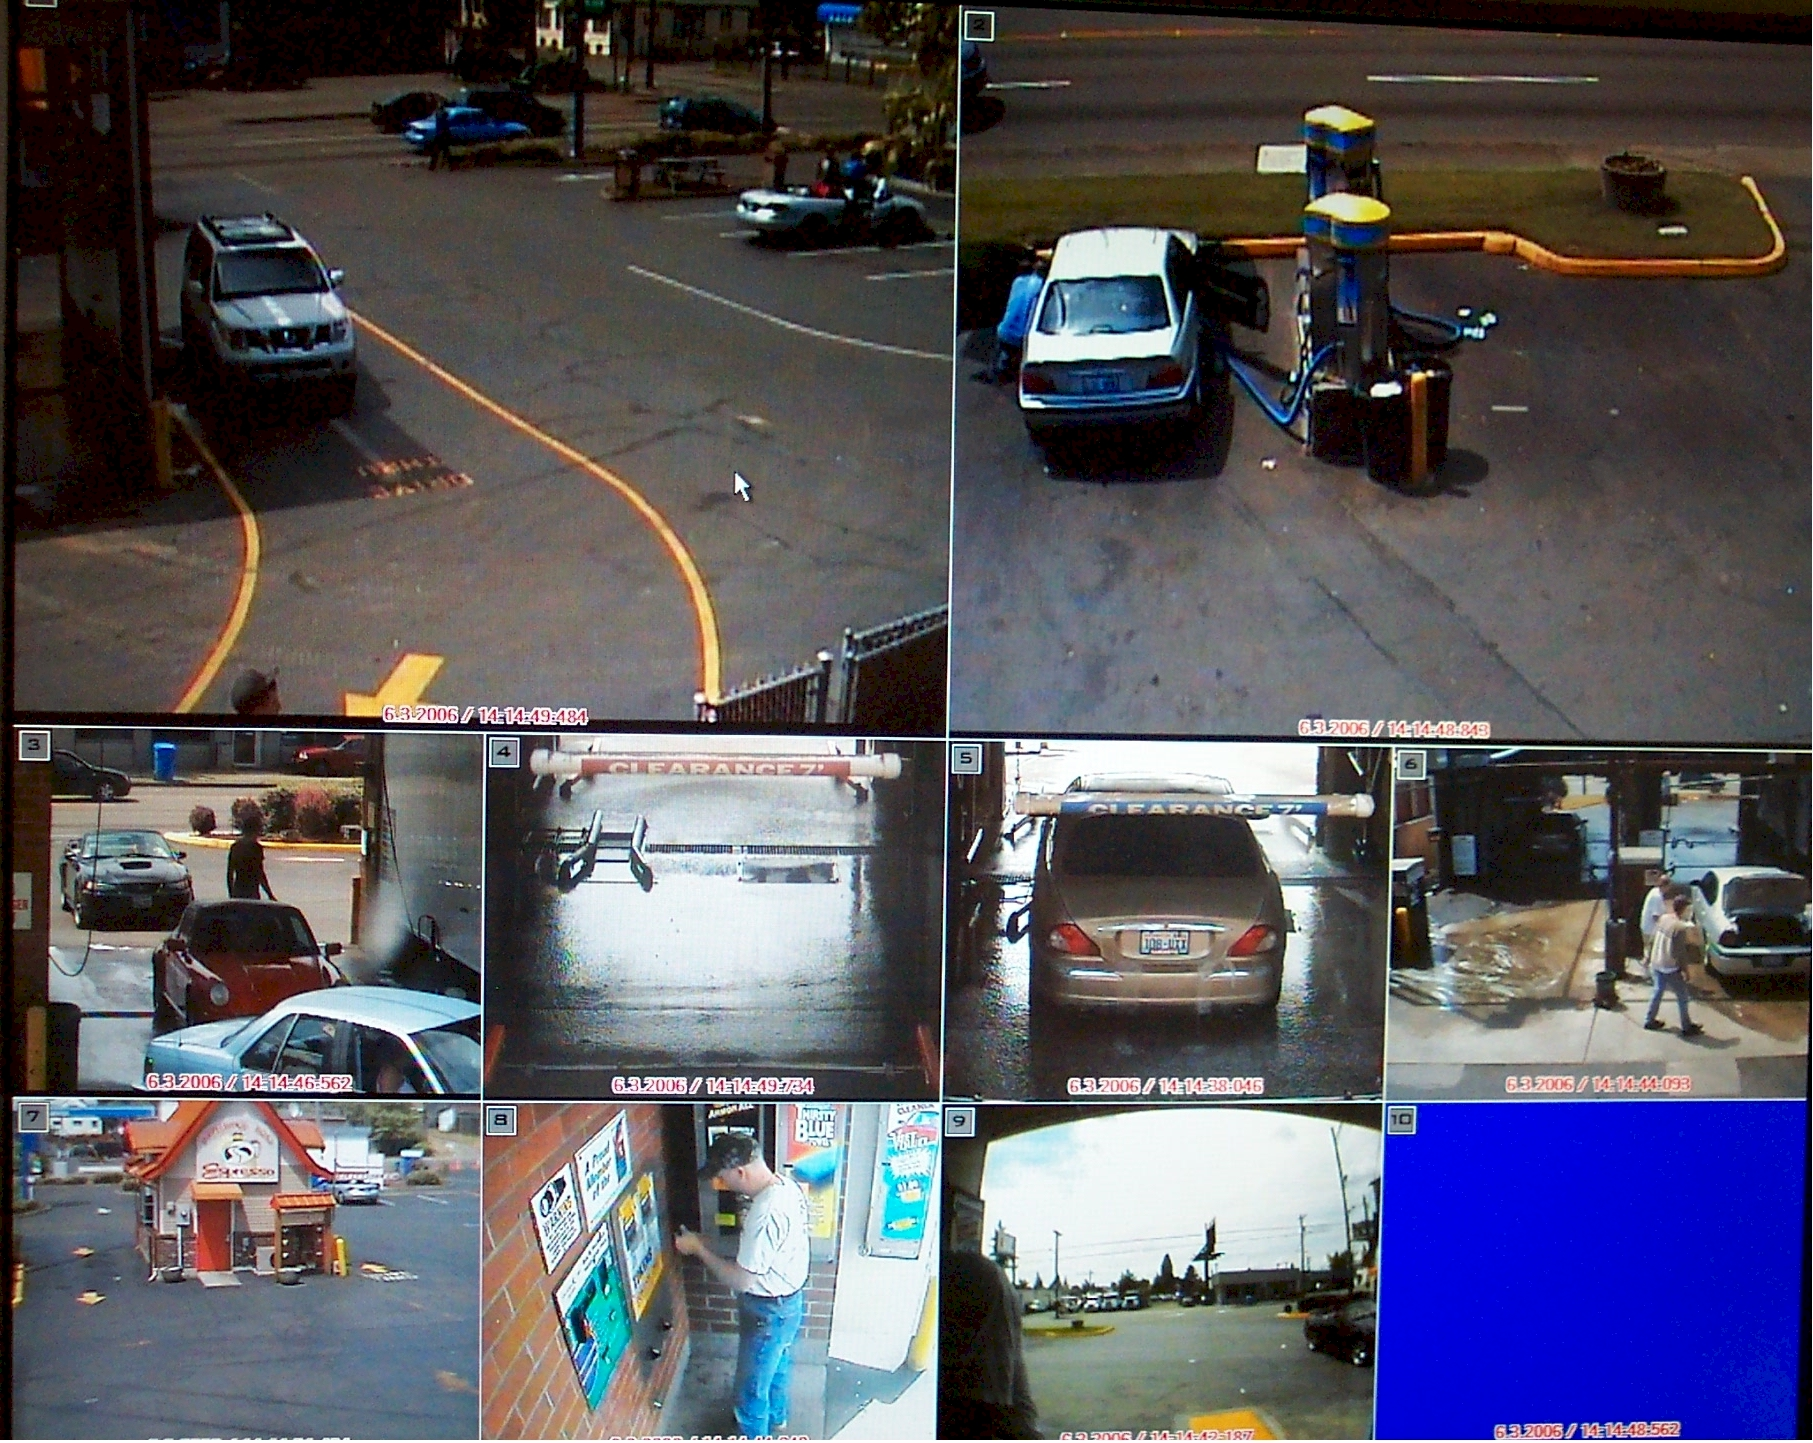 Seattle DVR - Retail - Store- Surveillance CCTV Server Security Camera